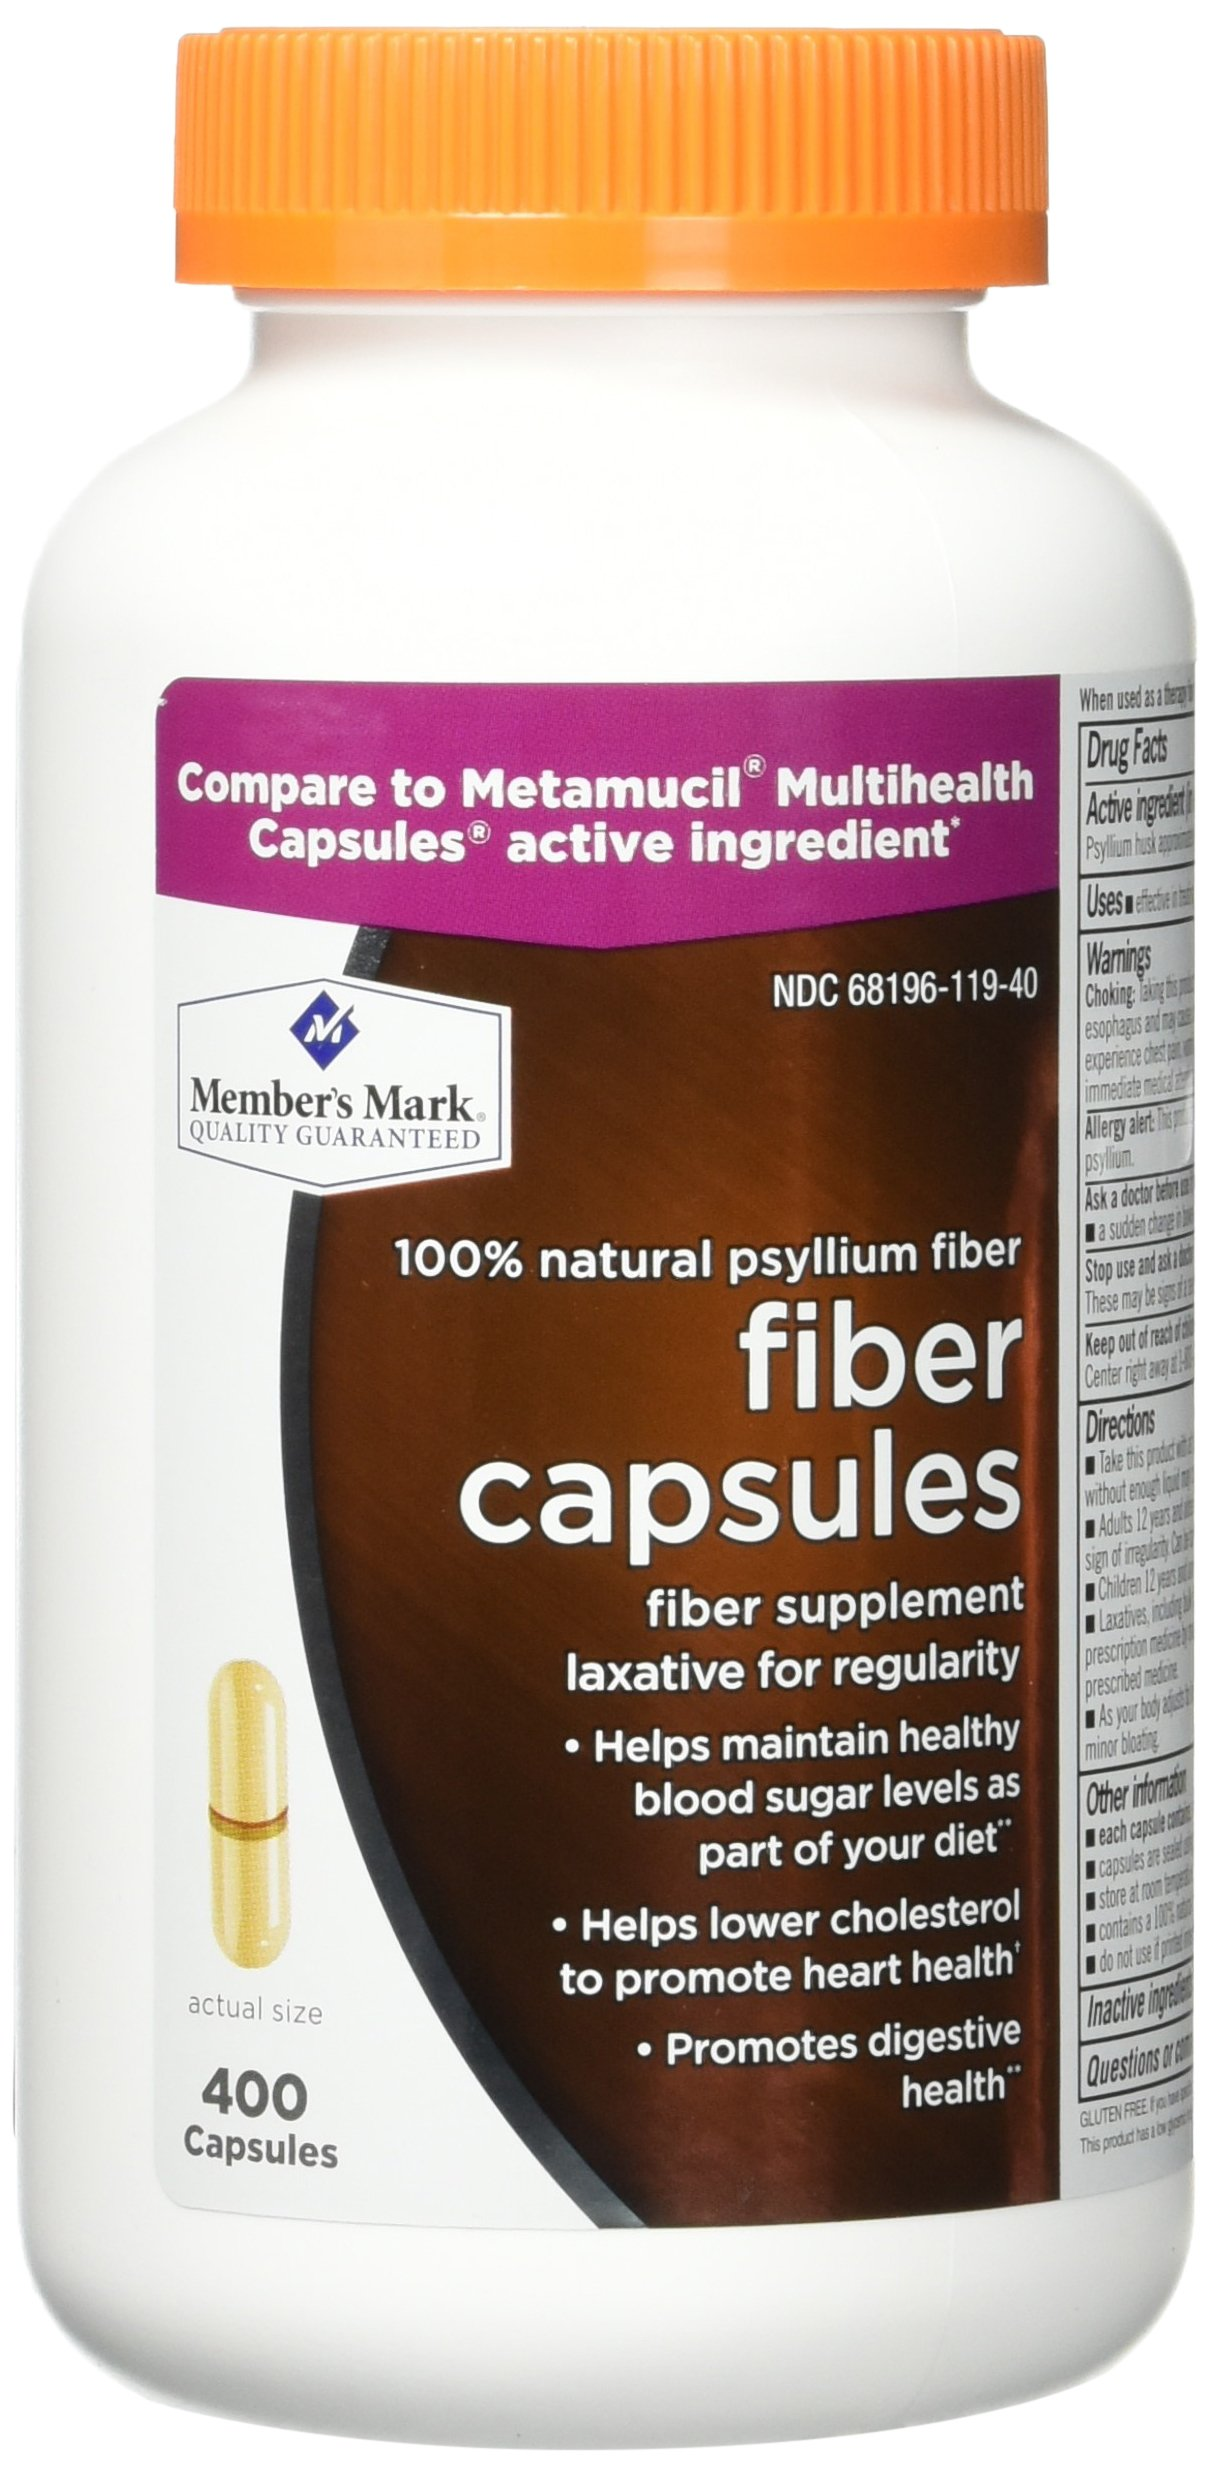 800 Count Fiber Capsules Member's Mark Therapy for Regularity/Fiber Supplement - Compare to the Active Ingredient in Metamucil Capsules